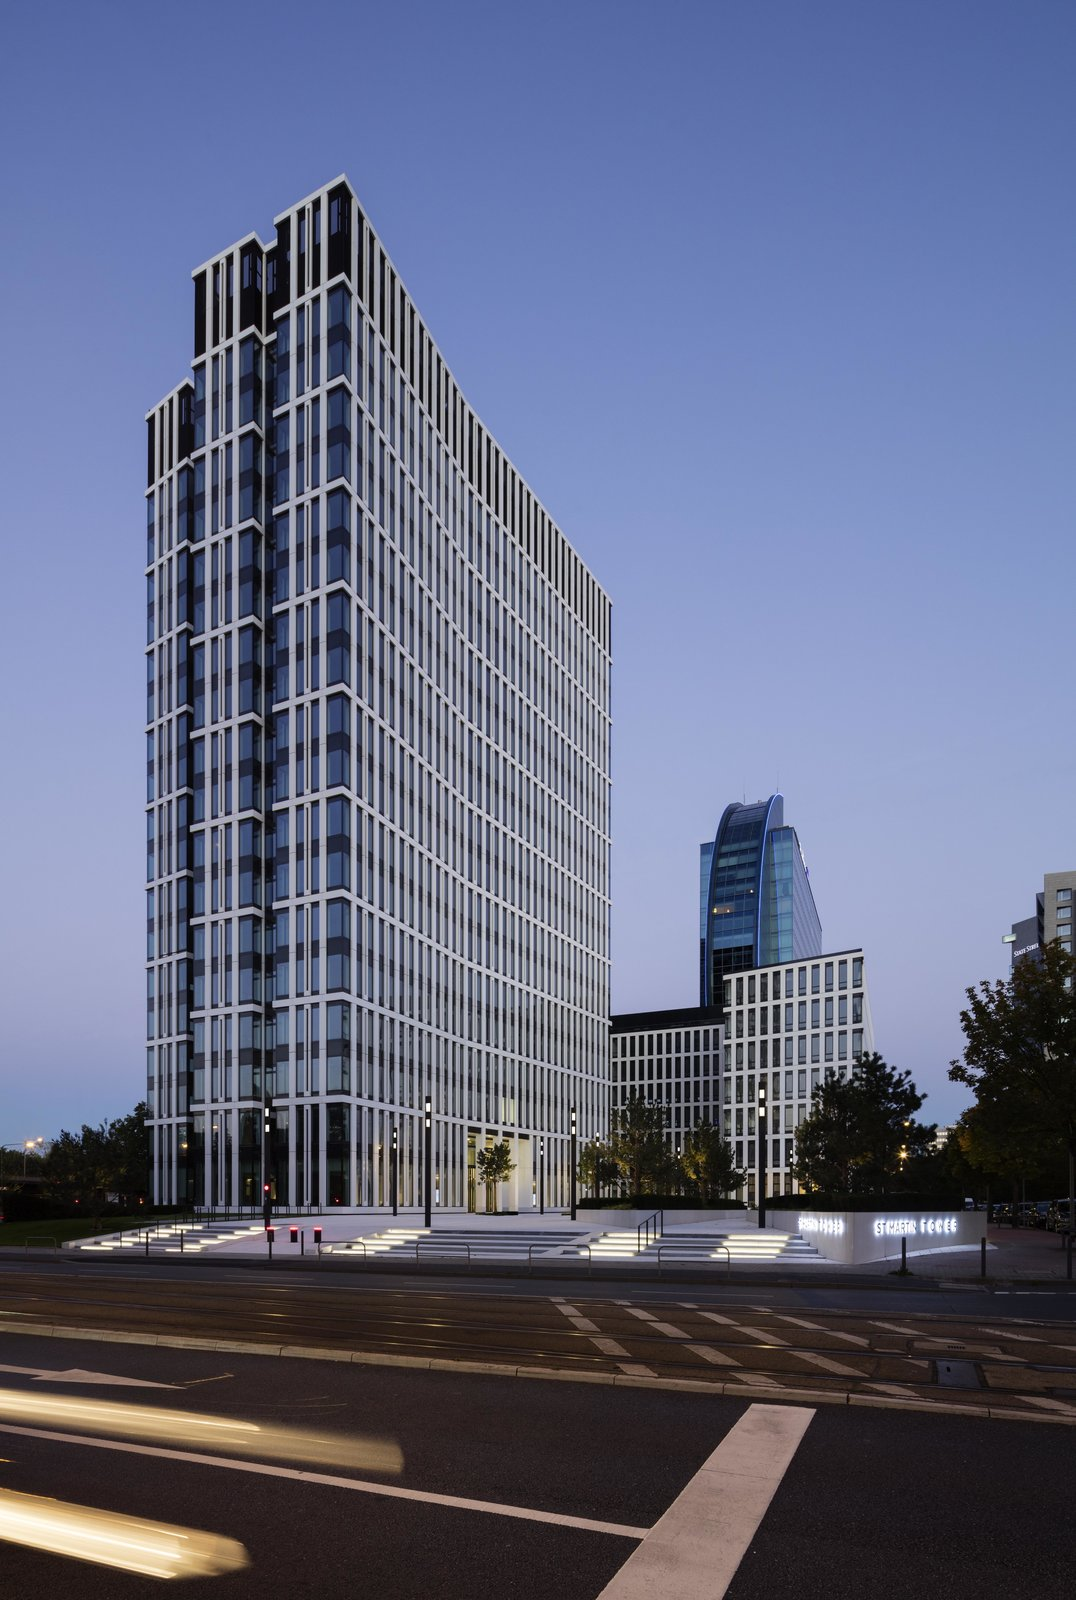 The St Martin Tower, located on Theodor-Heuss-Allee in Frankfurt am Main, was inaugurated in the summer of 2015. The wing-shaped, 18-story office building was designed by the architectural firm msm Meyer Schmitz-Morkramer. It offers tenants an infrastructure that is geared towards sustainability, corporate responsibility and a full-service philosophy: in addition to cafes, lounges and restaurants there is an in-house daycare center and gym, as well as various spaces for events and conferences.  more on: www.ewo.com  ewo for St. Martin Tower, Frankfurt (Germany) by ewo